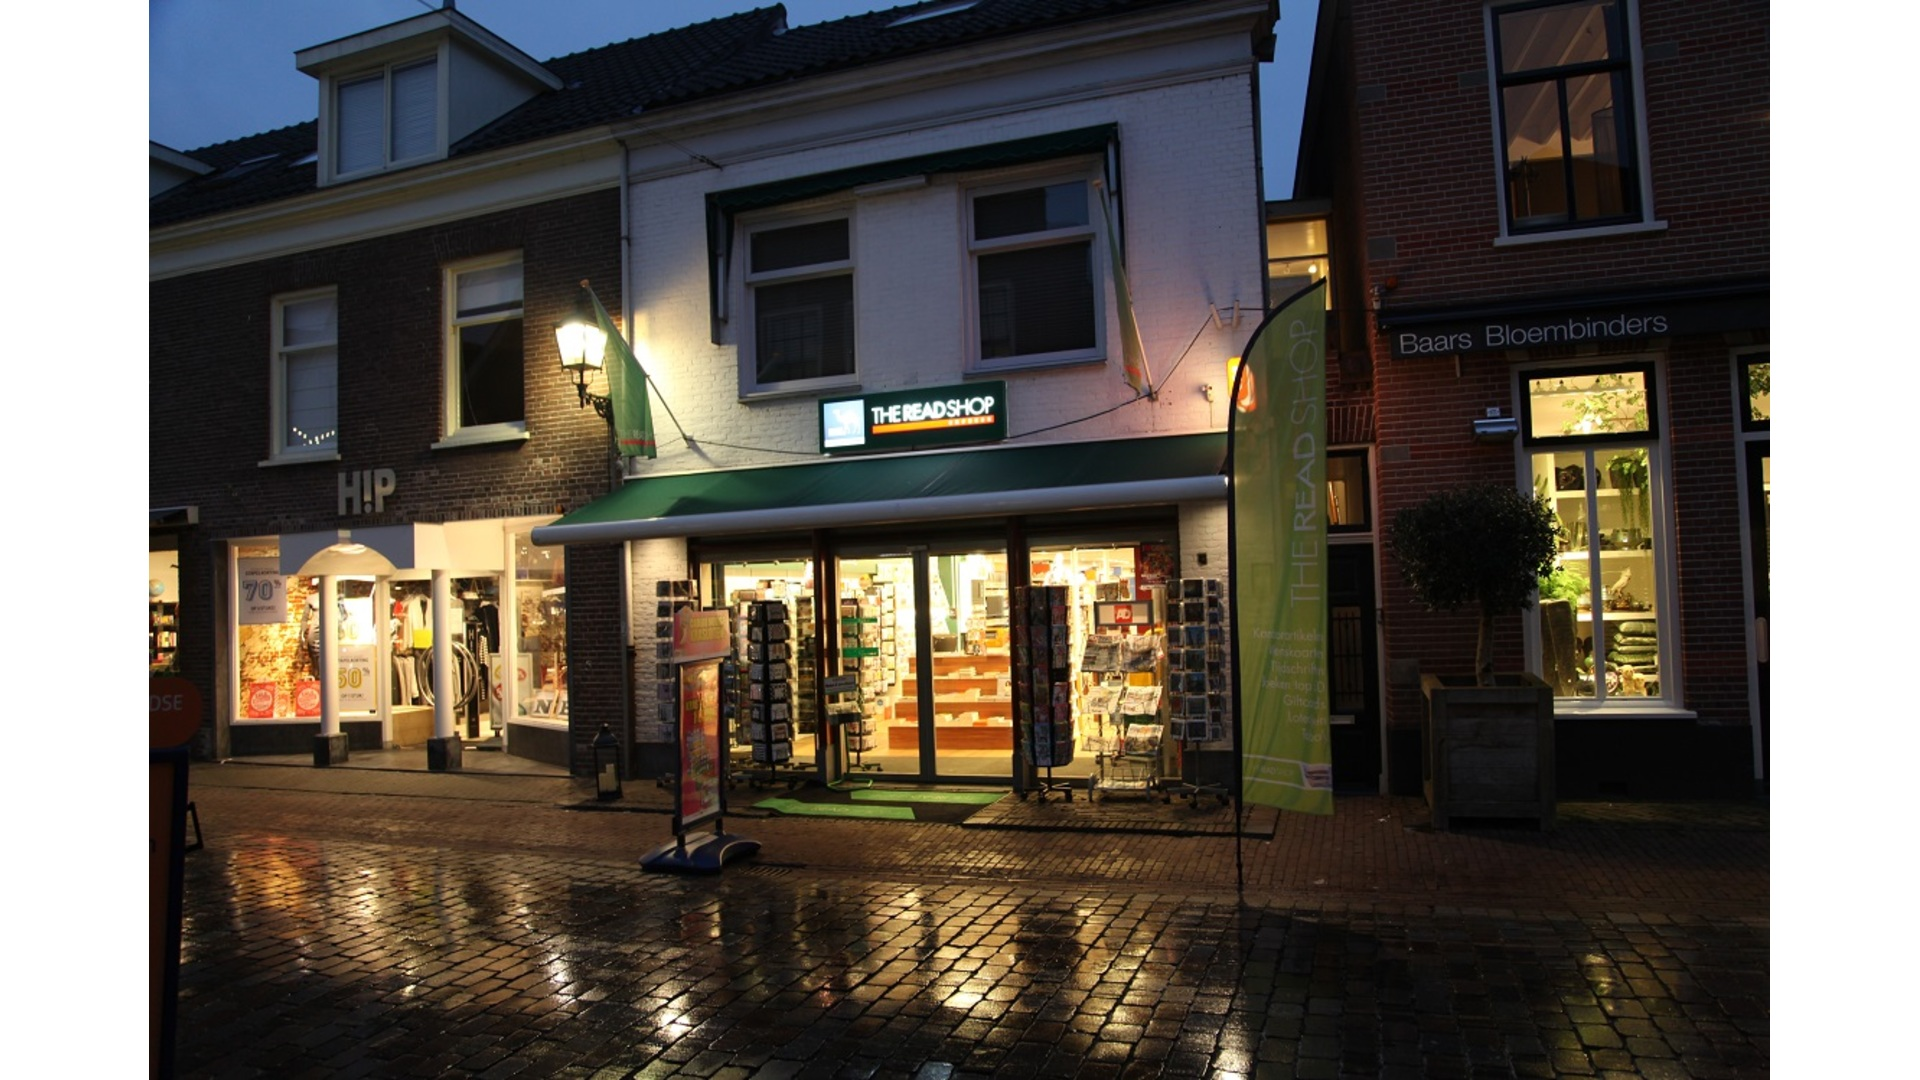 The Readshop IJsselstein